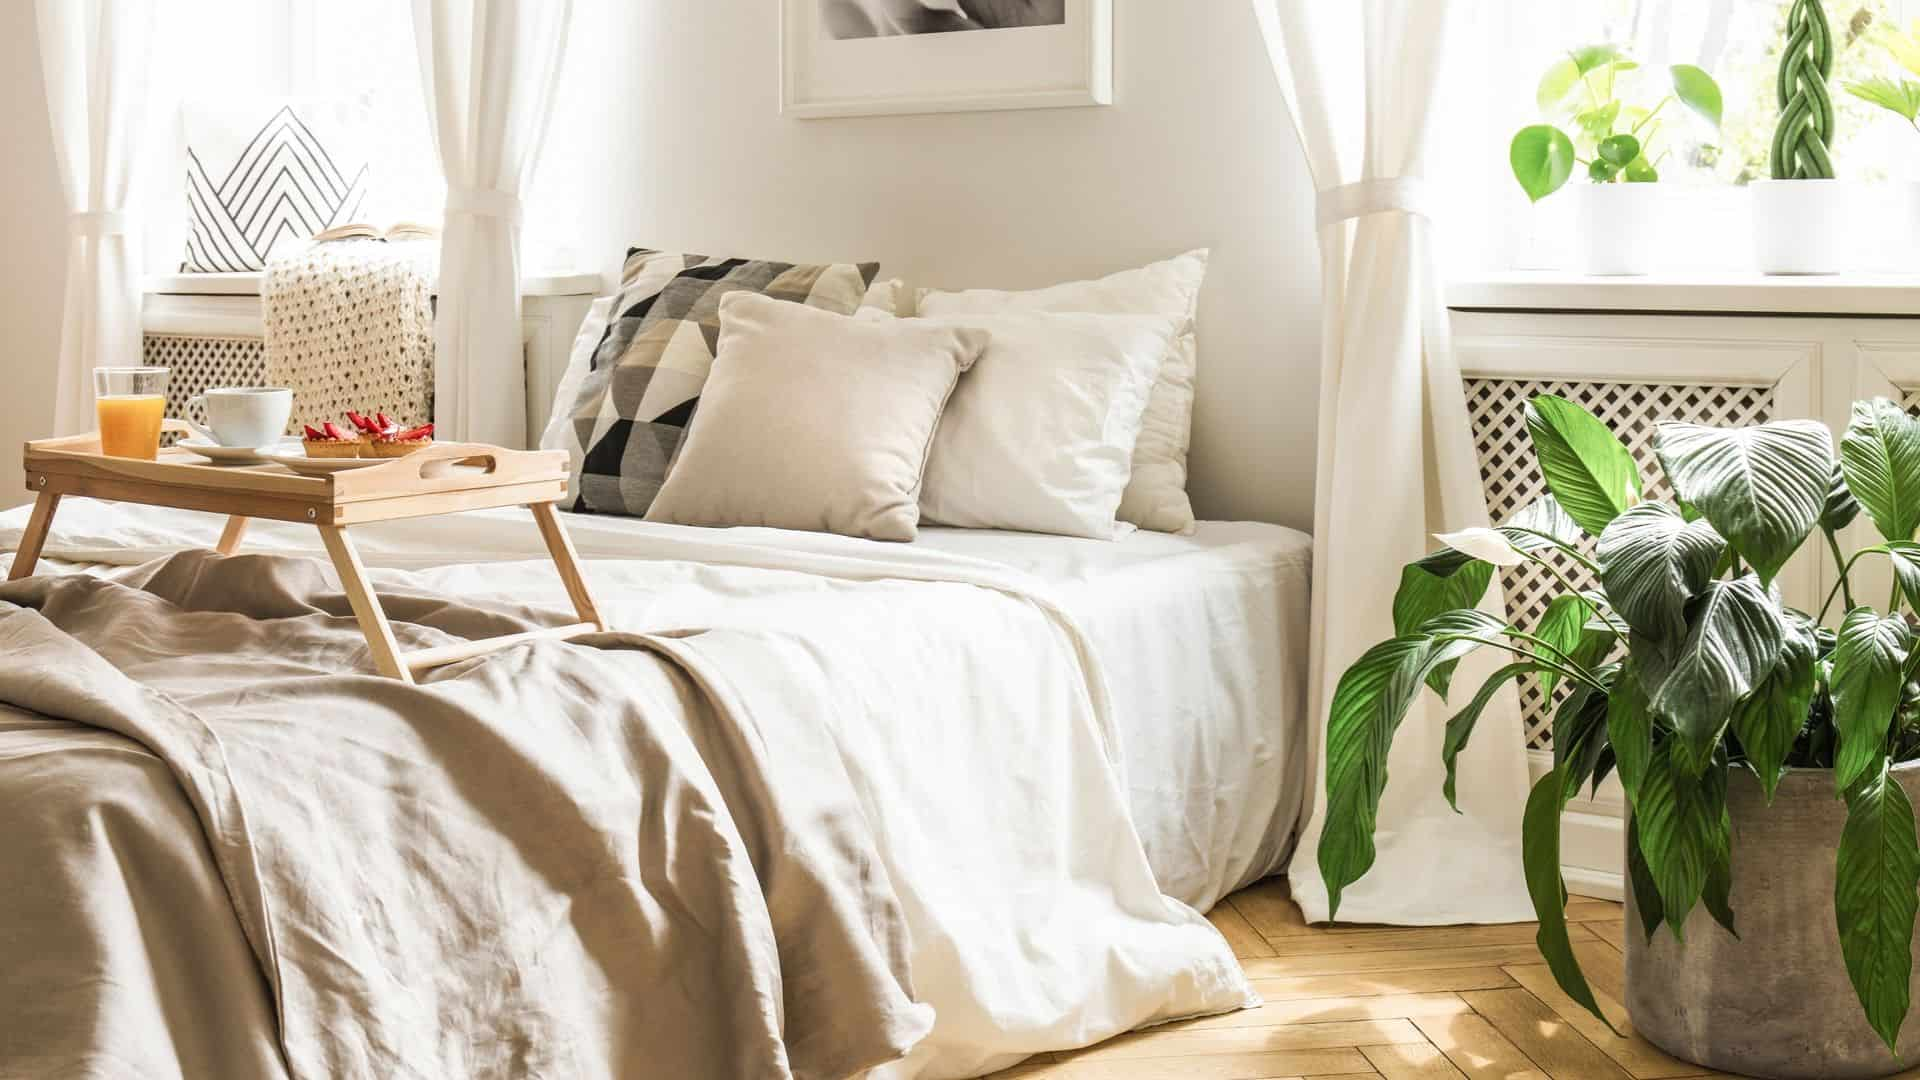 Guest Room Ideas On a Budget